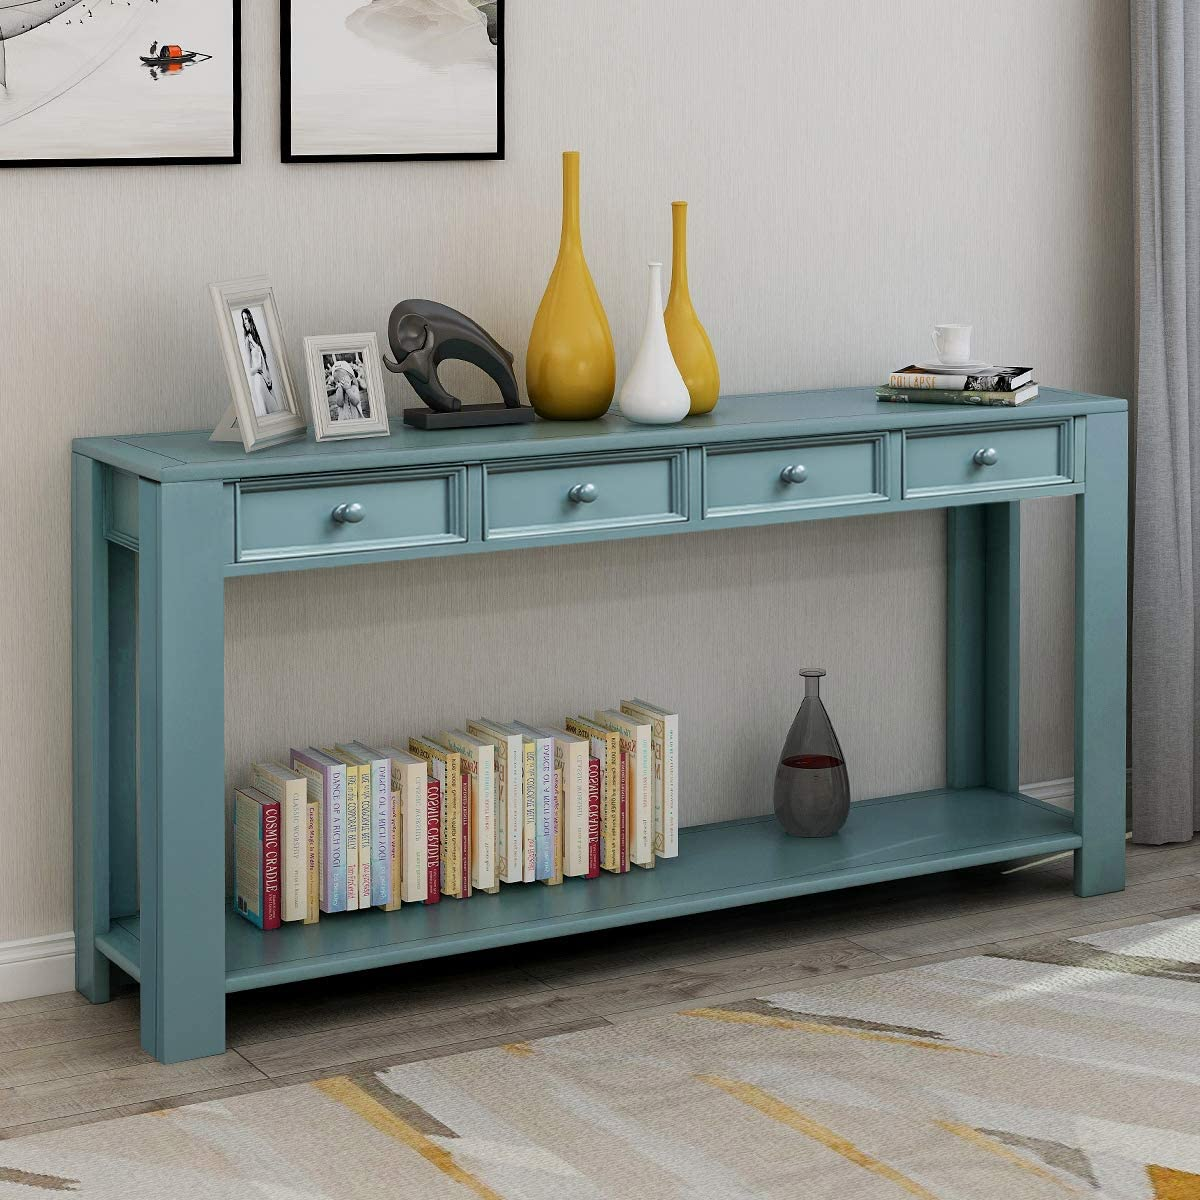 GLCHQ Multifunctional Retro Console Table Four Drawers and Bottom Shelf Sofa Table for Entryway hallways, Living Room Dark Blue